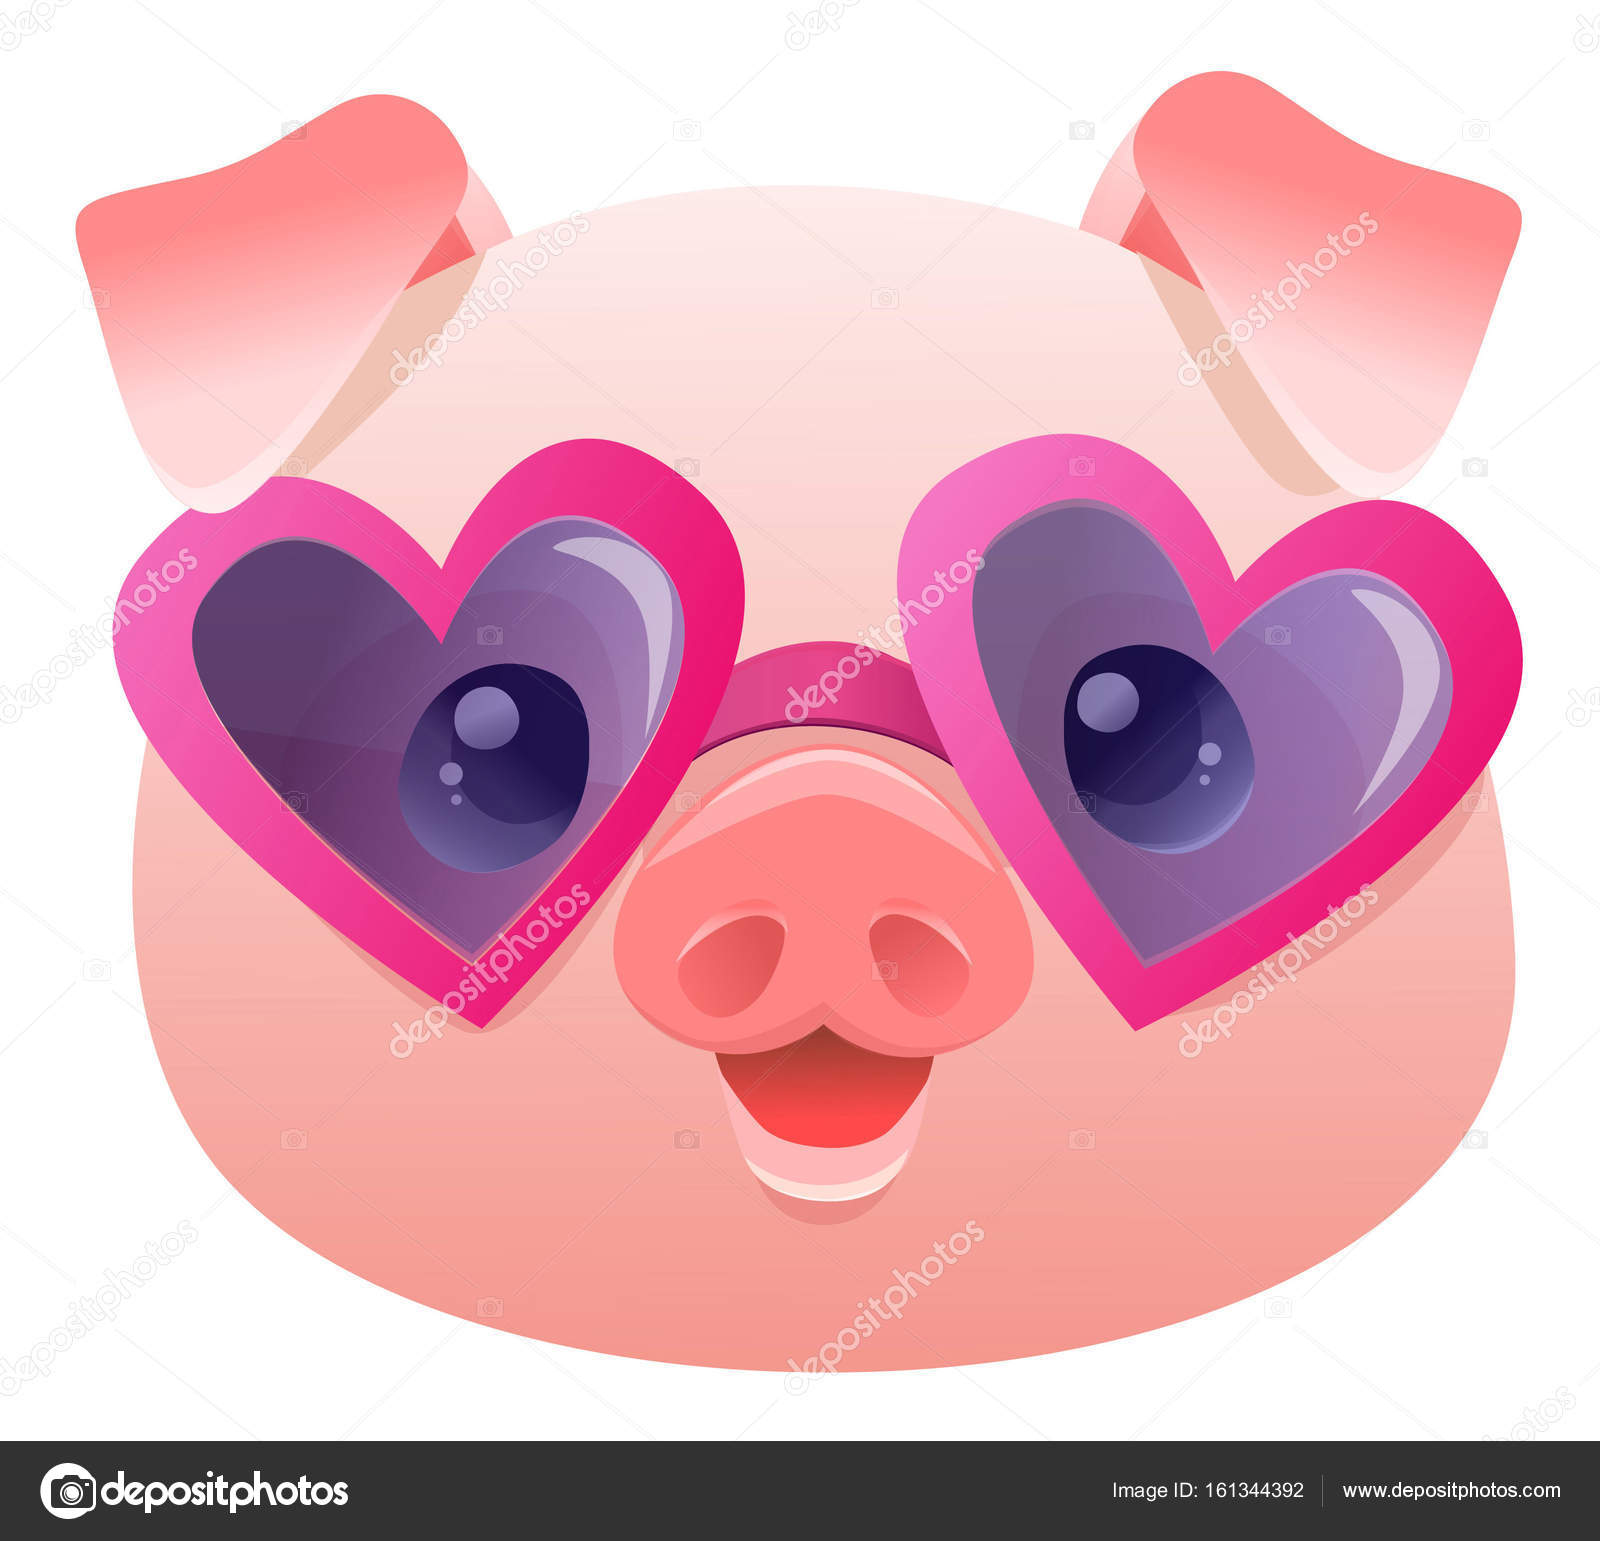 Cute Pig In Sunglasses Cartoon Vector Illustration By AlsouSh